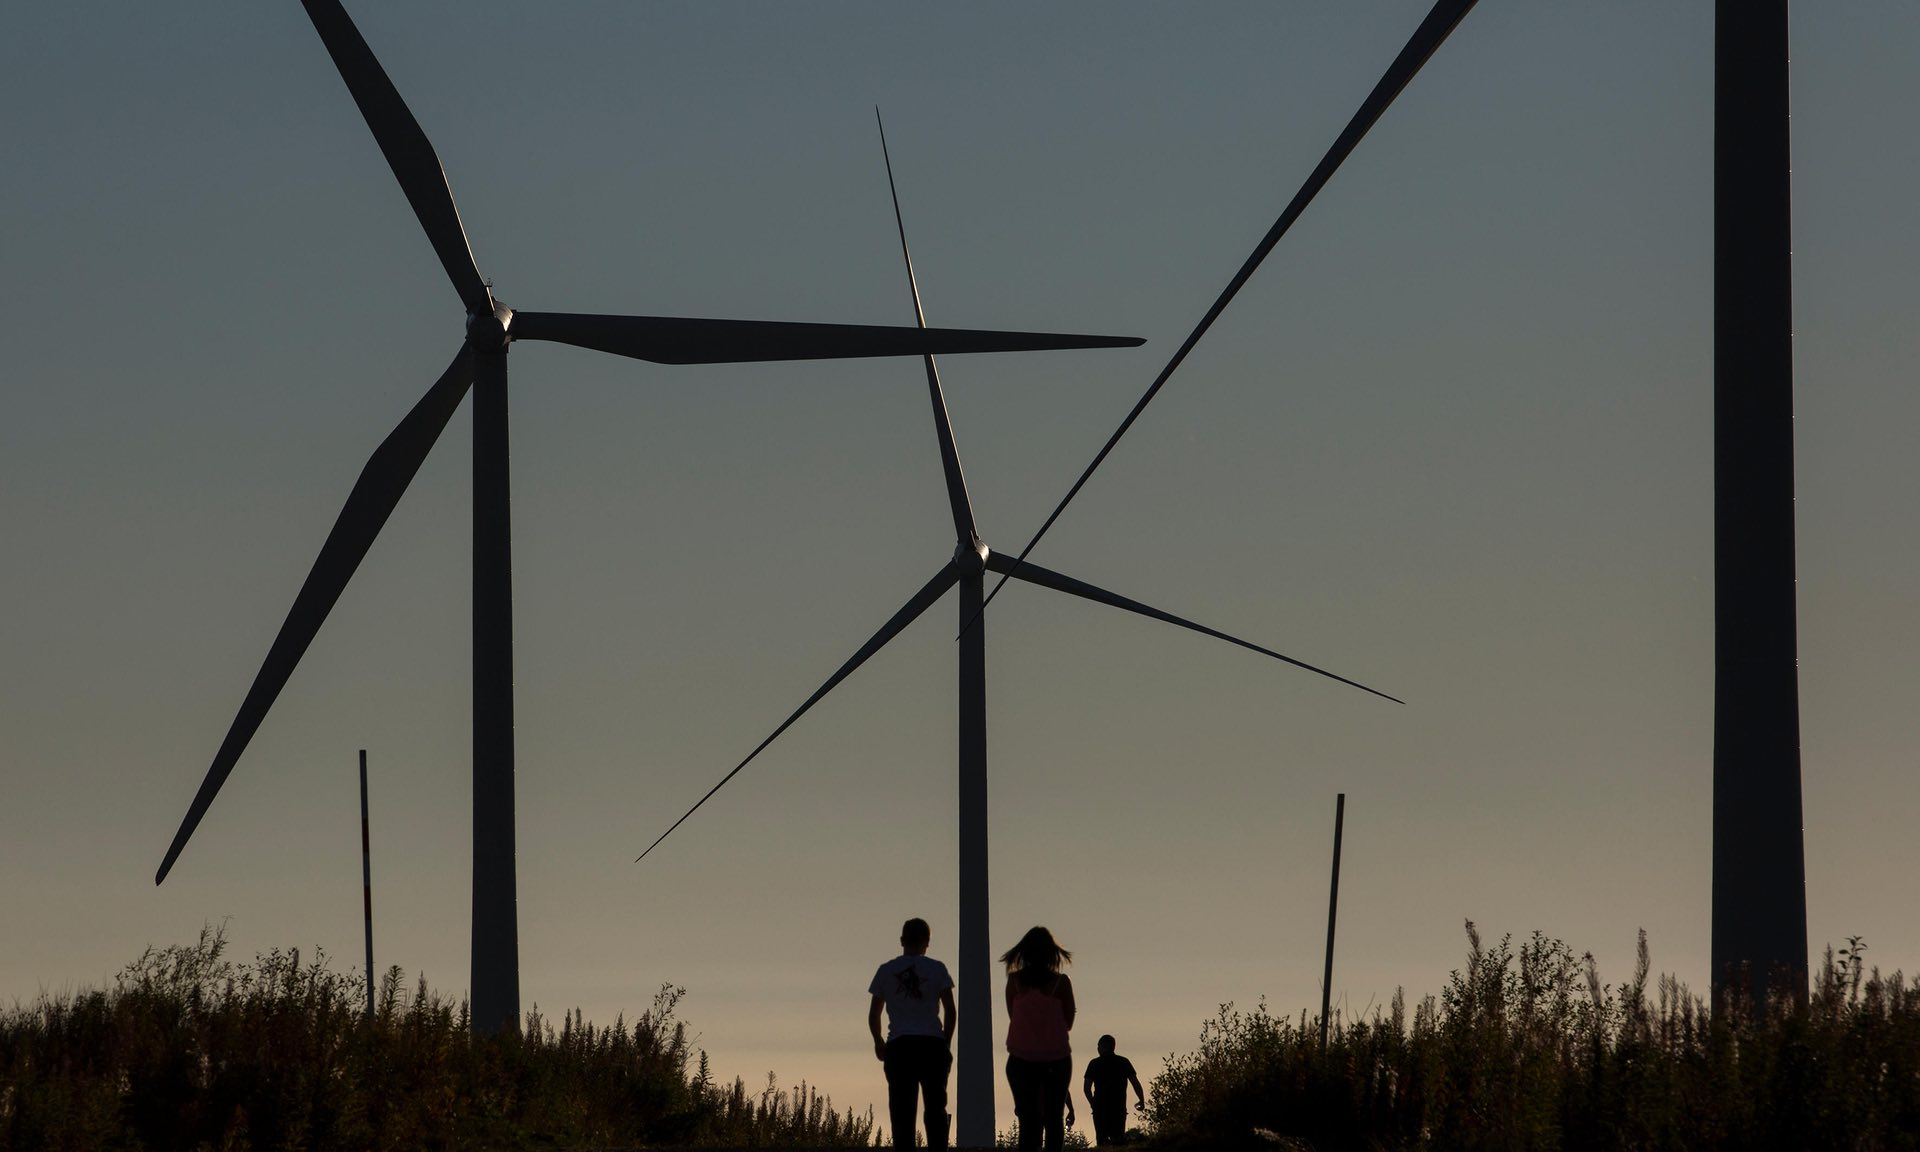 By 2040, wind and solar would account for 45% of the global power mix. (Photo: Alamy Stock Photo)